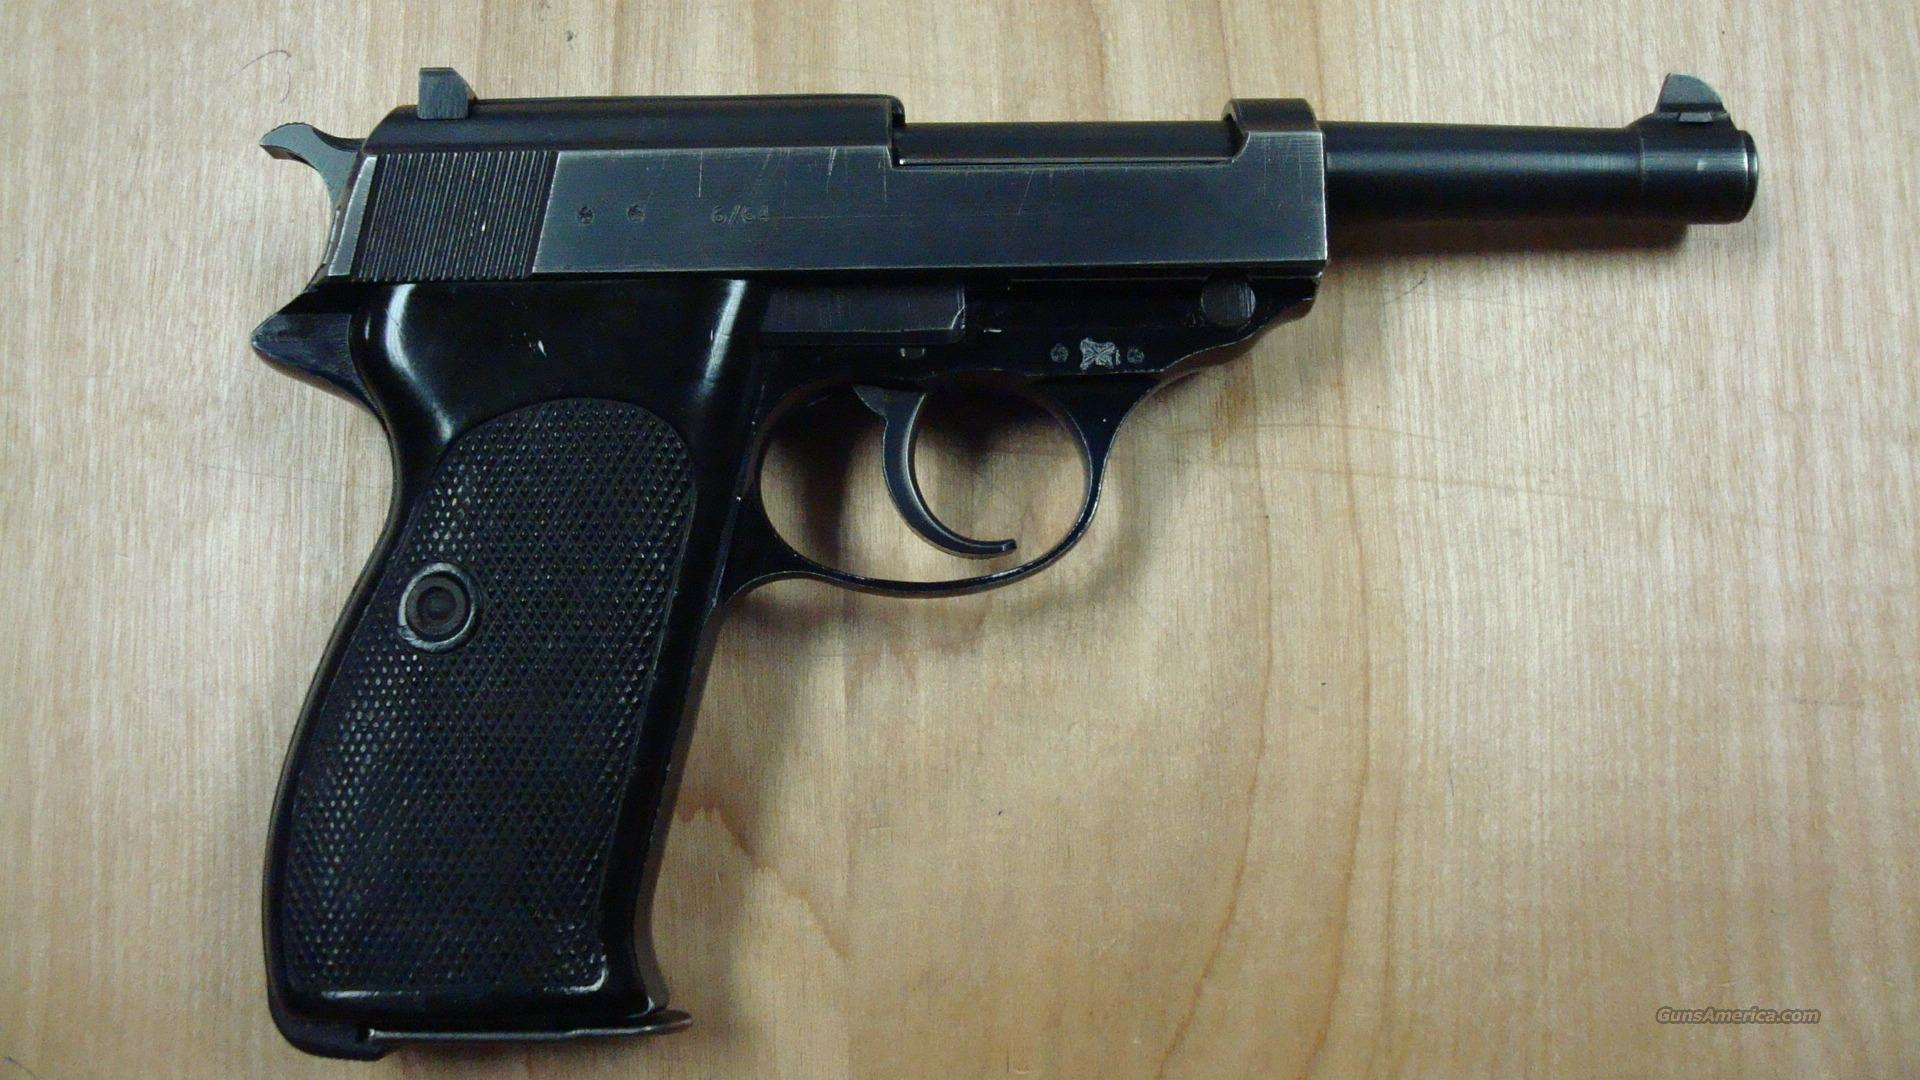 WALTHER P38 P1 9MM MINT W/ BOX  Guns > Pistols > Walther Pistols > Post WWII > P-38